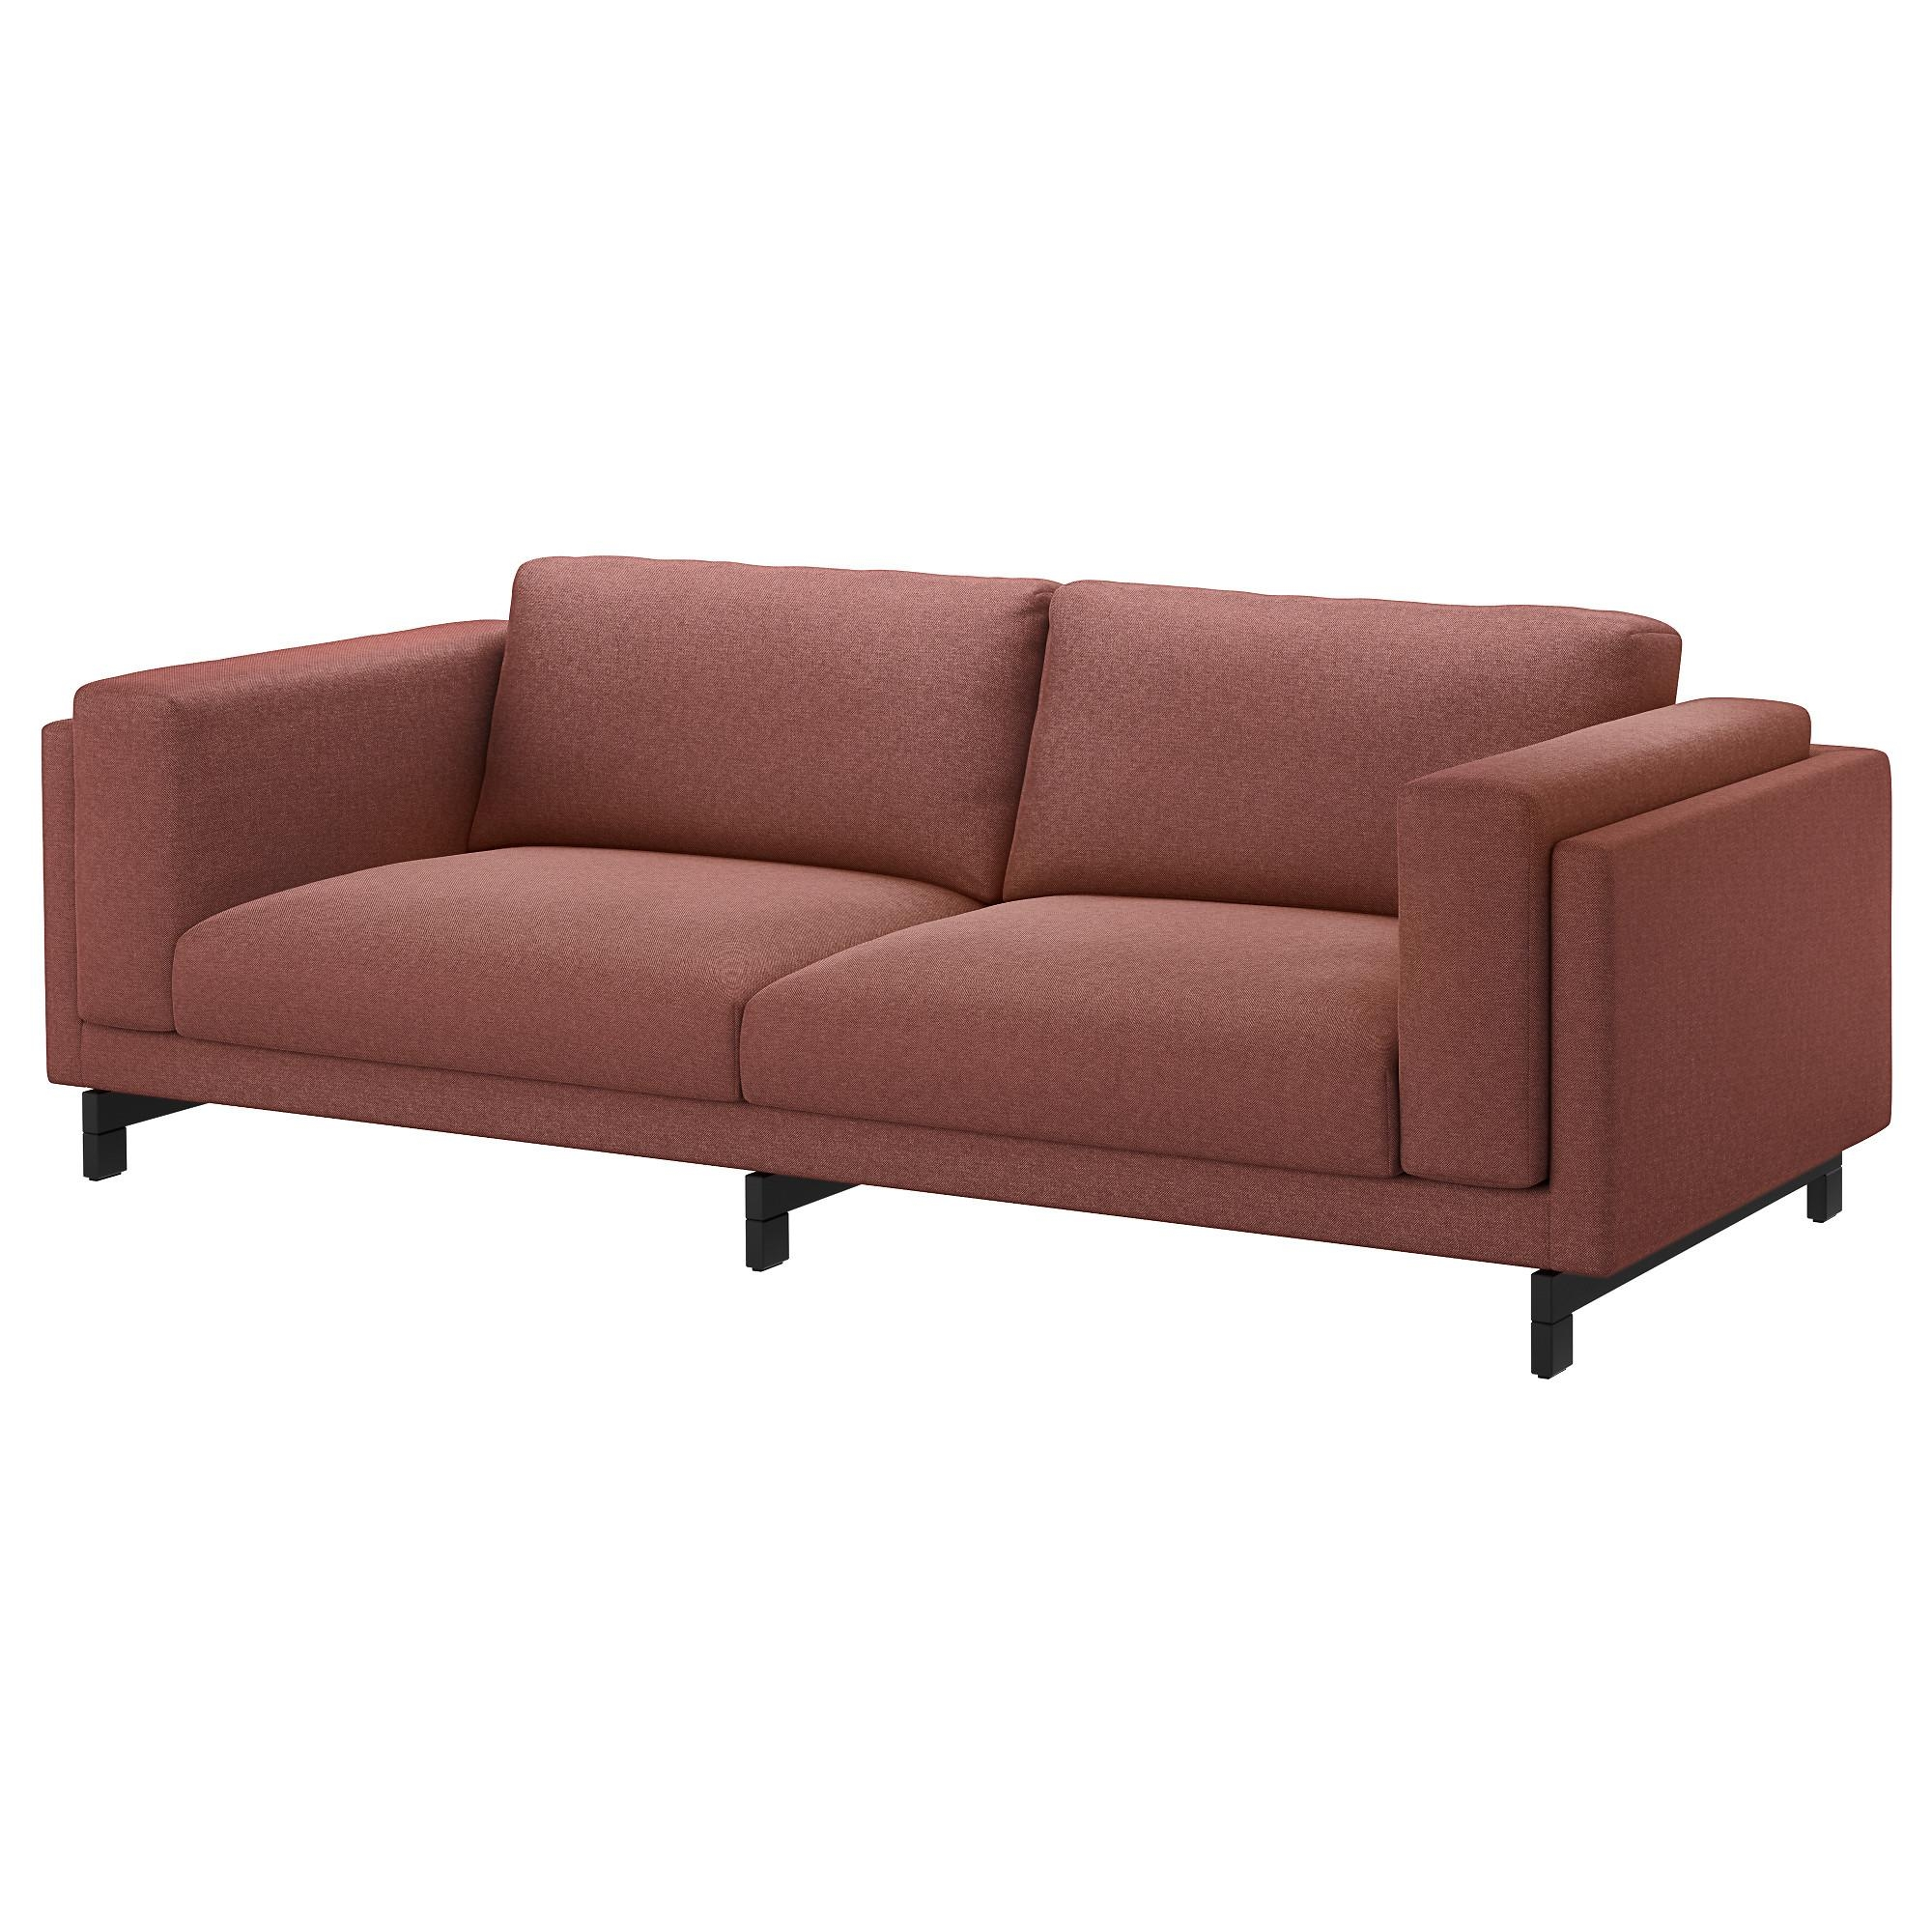 20 Choices Of Red Sofa Beds Ikea Sofa Ideas